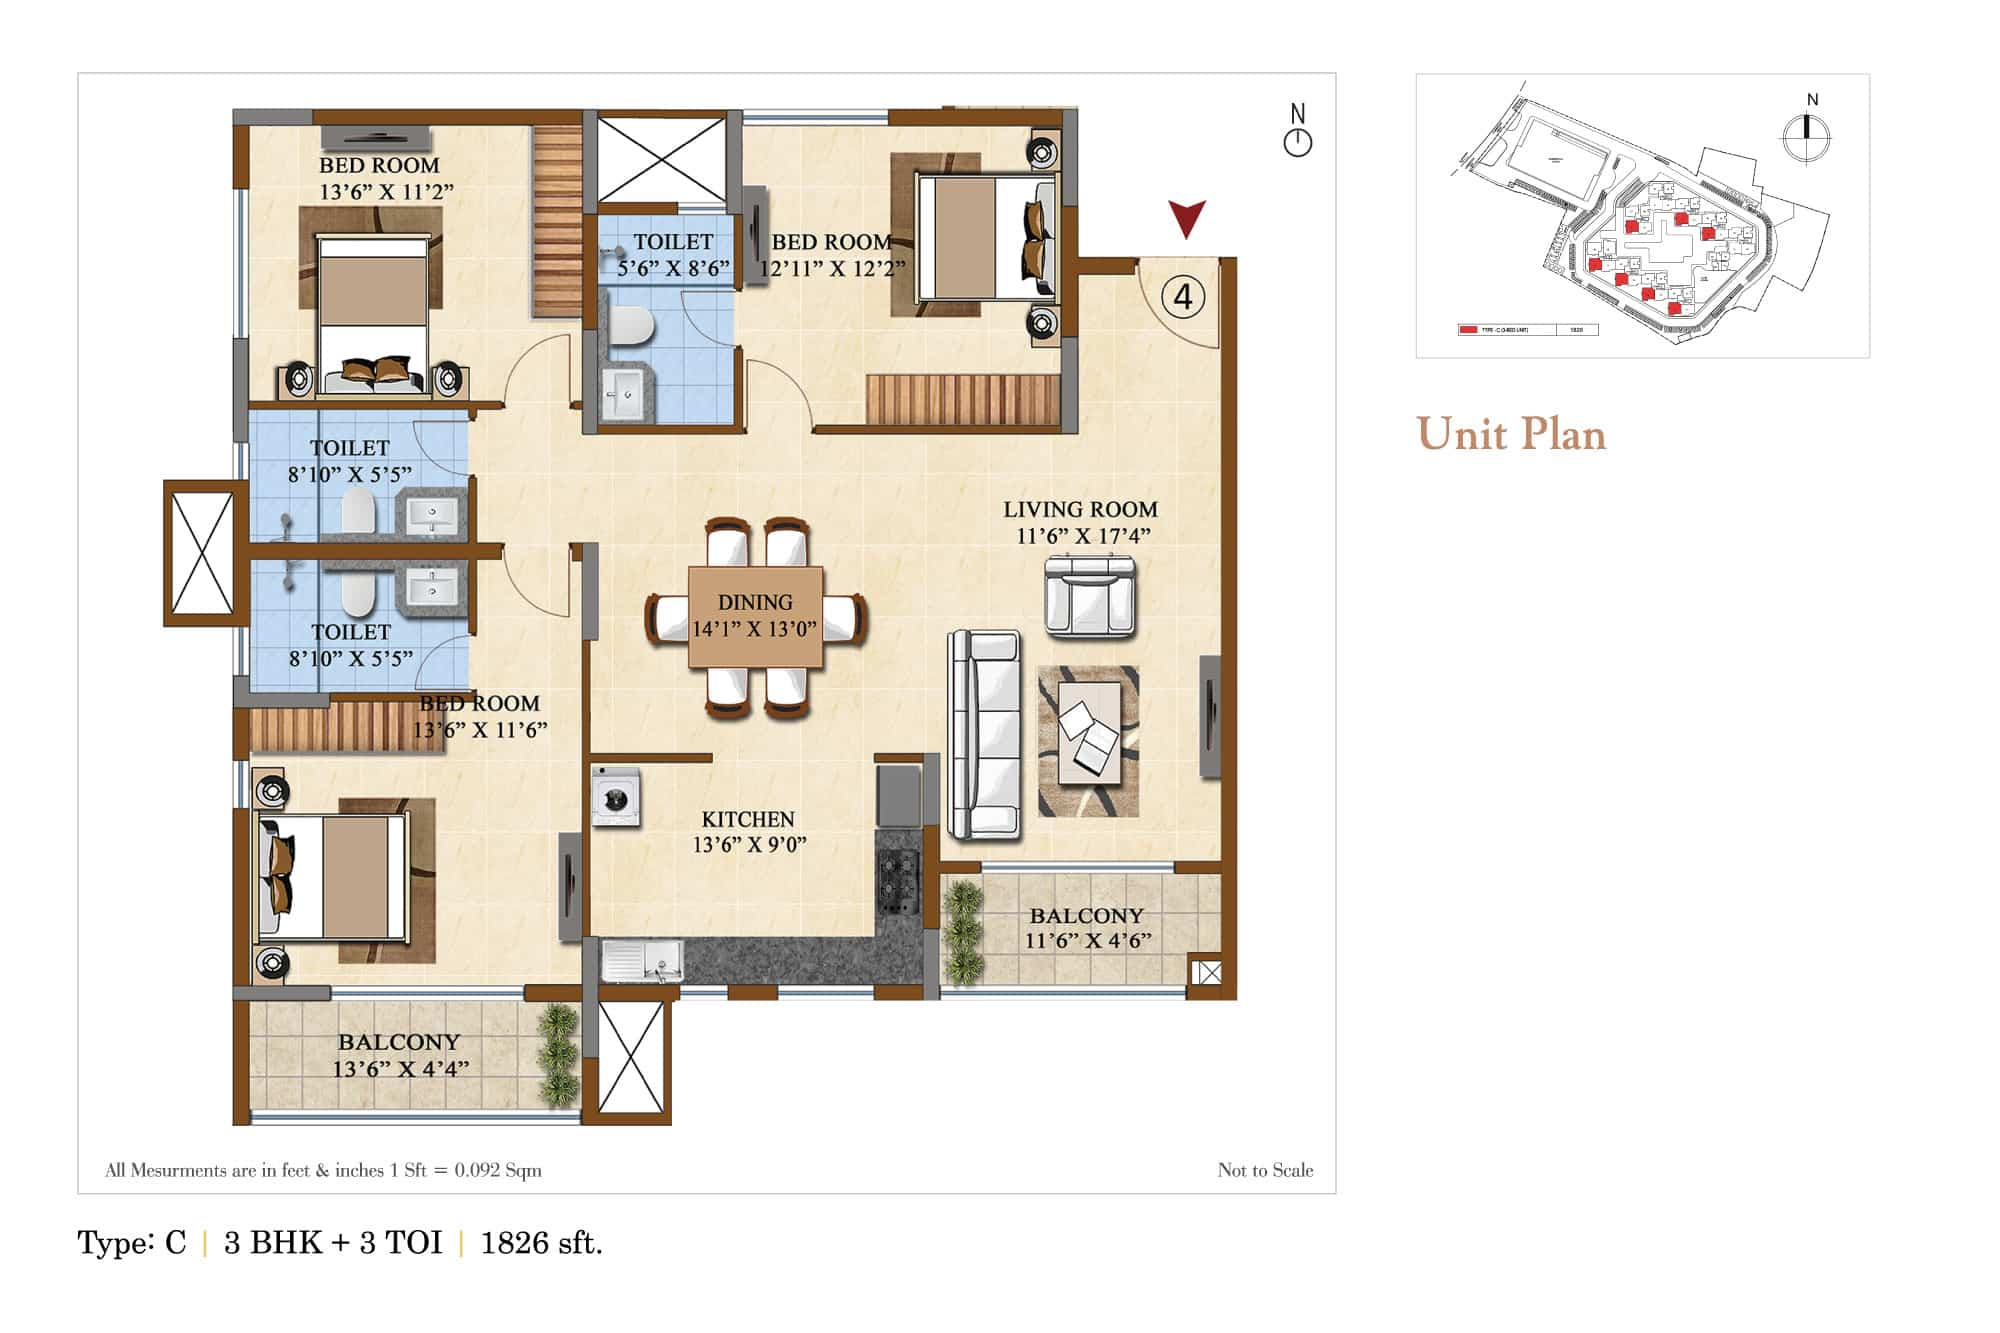 salarpuria sattva divinity apartment 3bhk 1826sqft 1